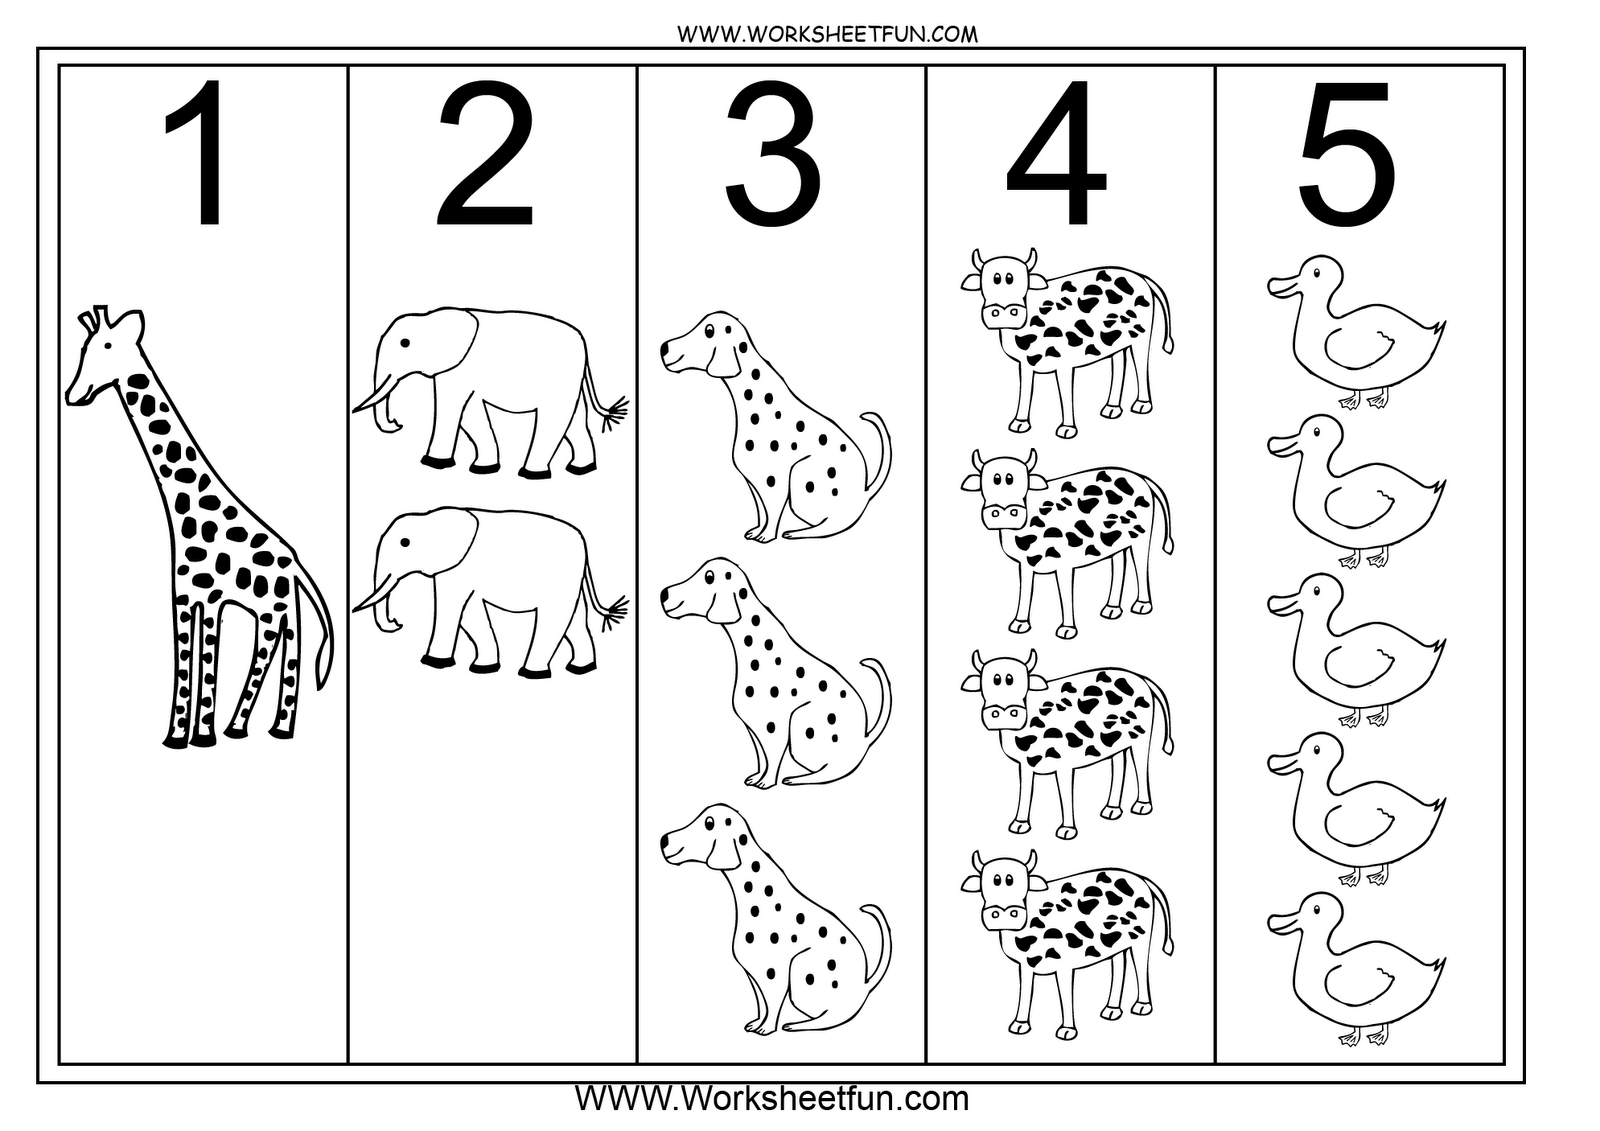 Worksheet Free Printable Number Worksheets 1-10 1000 images about preschool numbers on pinterest number words worksheets and preschool